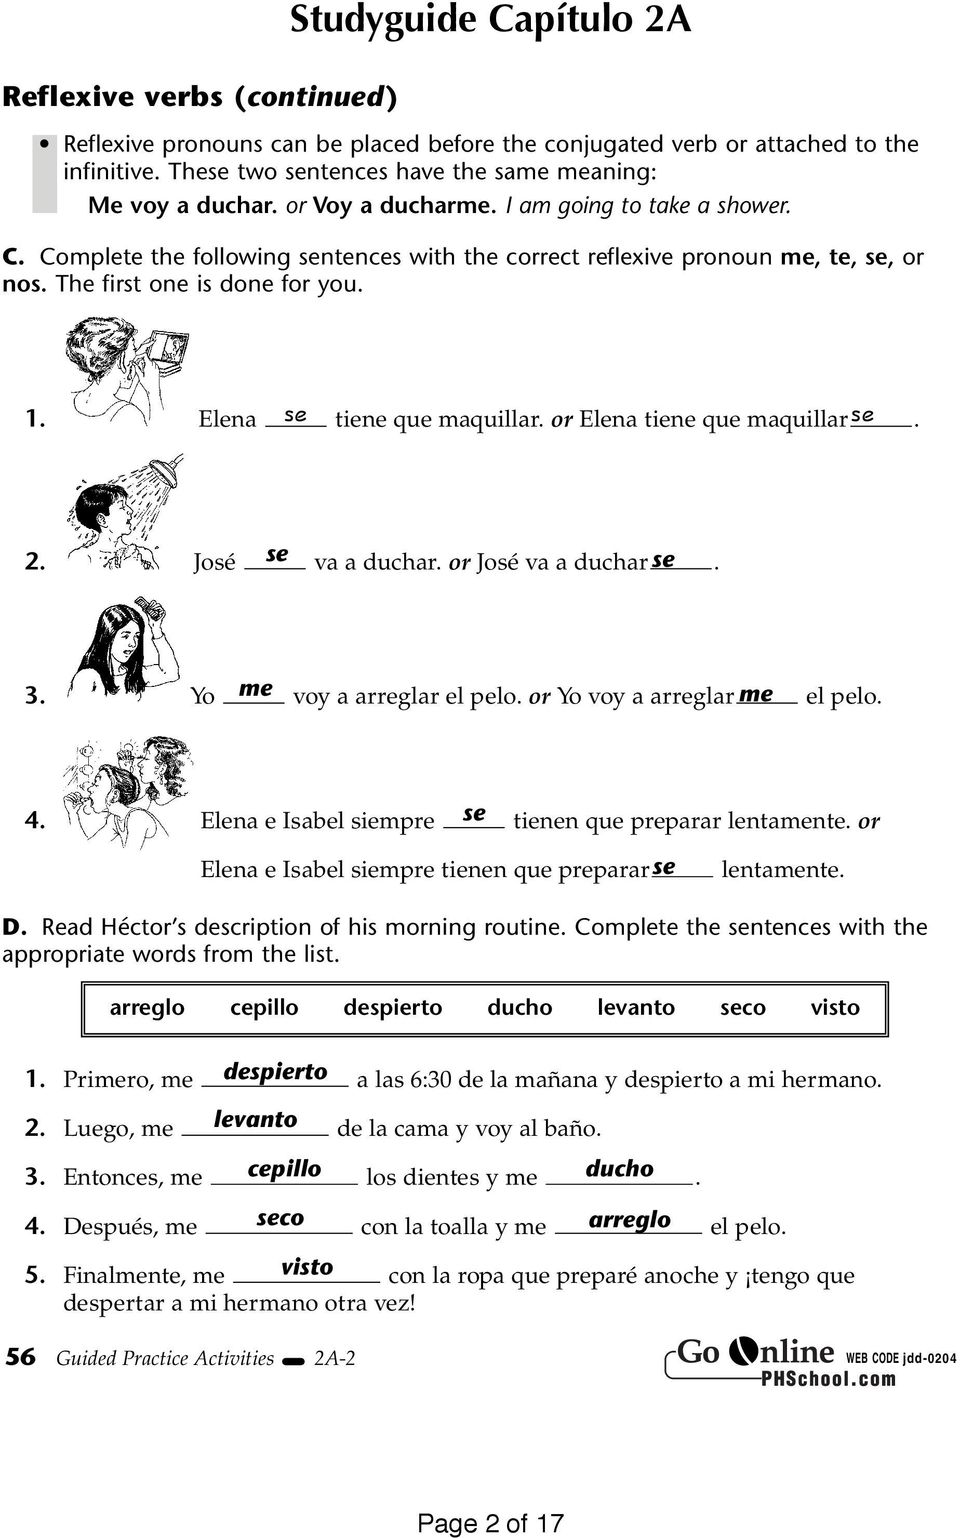 Complete the following sentences with the correct reflexive pronoun me, te, se, or nos. The first one is done for you. se 1. Elena tiene que maquillar. or Elena tiene que maquillar. se 2.